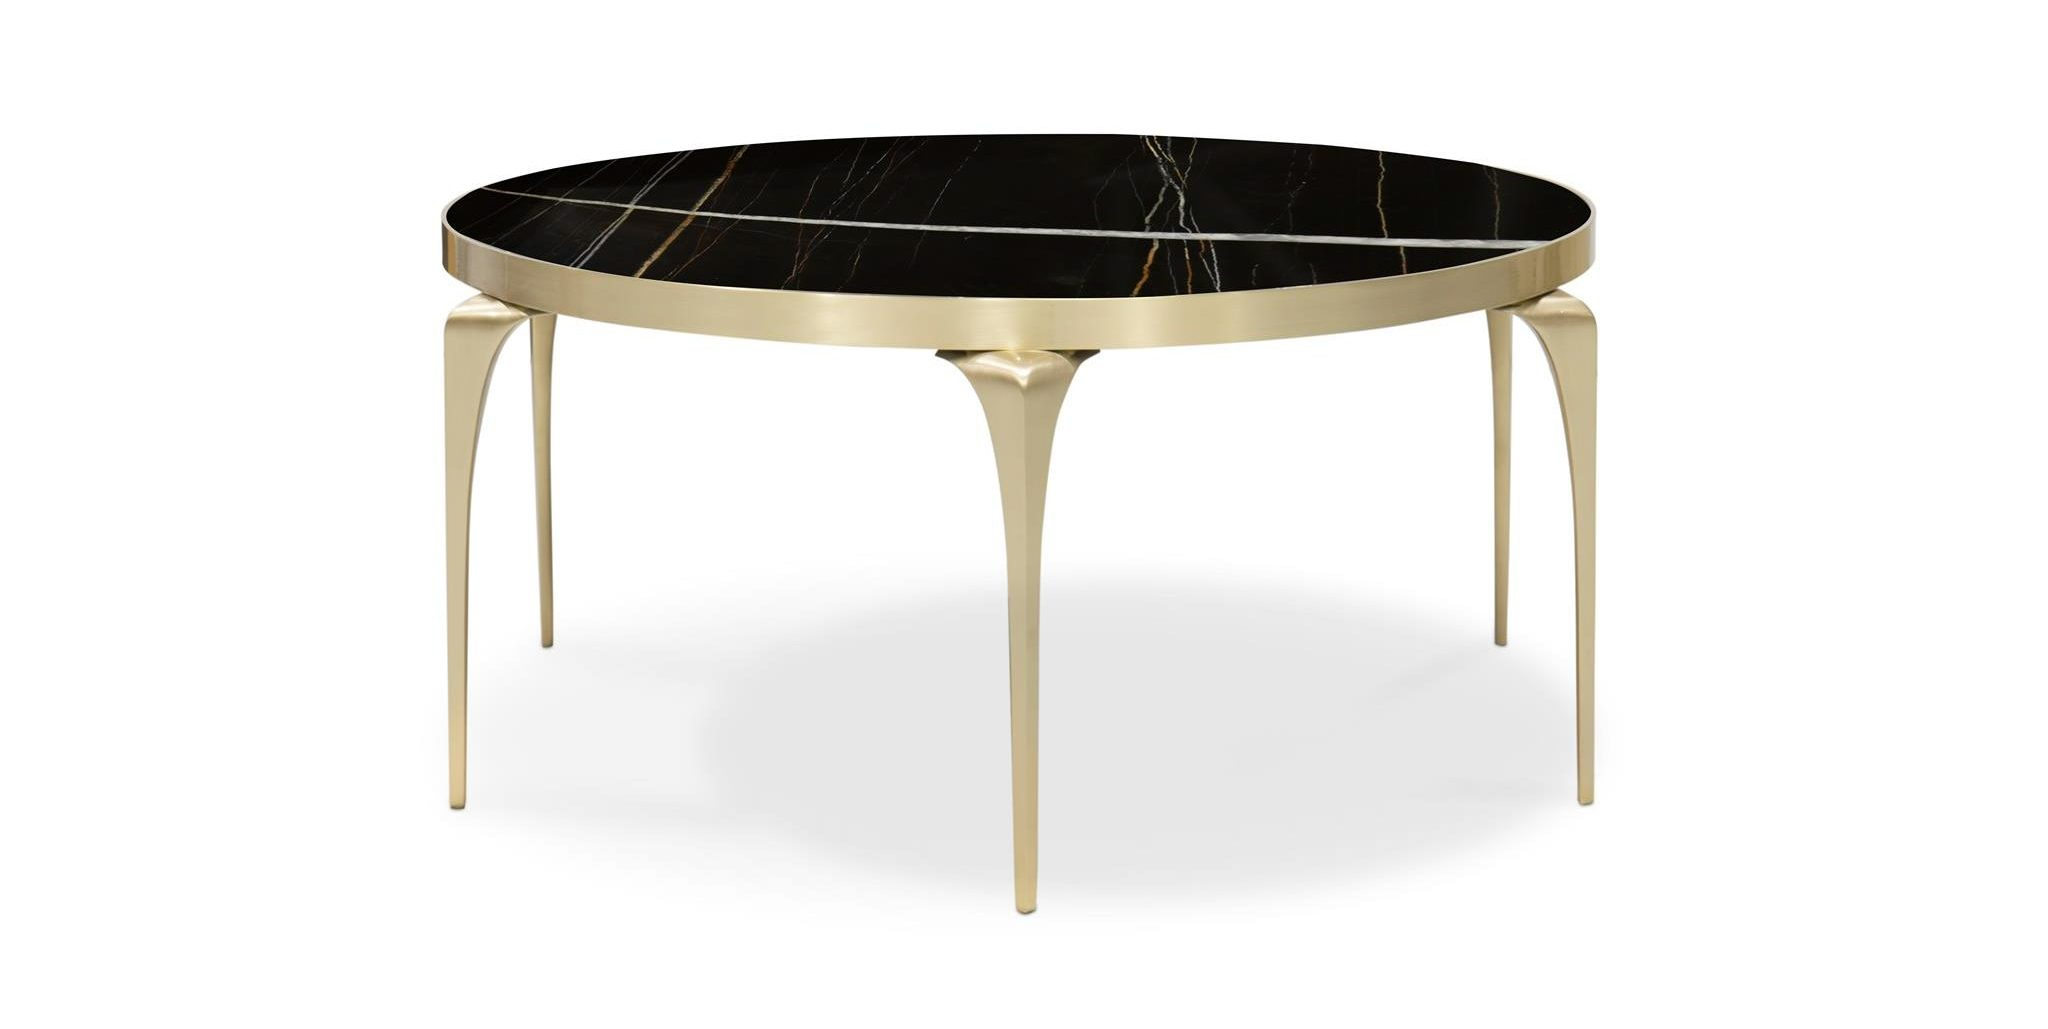 Rita Cocktail Table by KOKET - Salone del Mobile 2018 - luxury cocktail tables - unique coffee tables - marble and brass cocktail tables - round coffee tables - round cocktail tables - metal coffee tables - luxury coffee tables